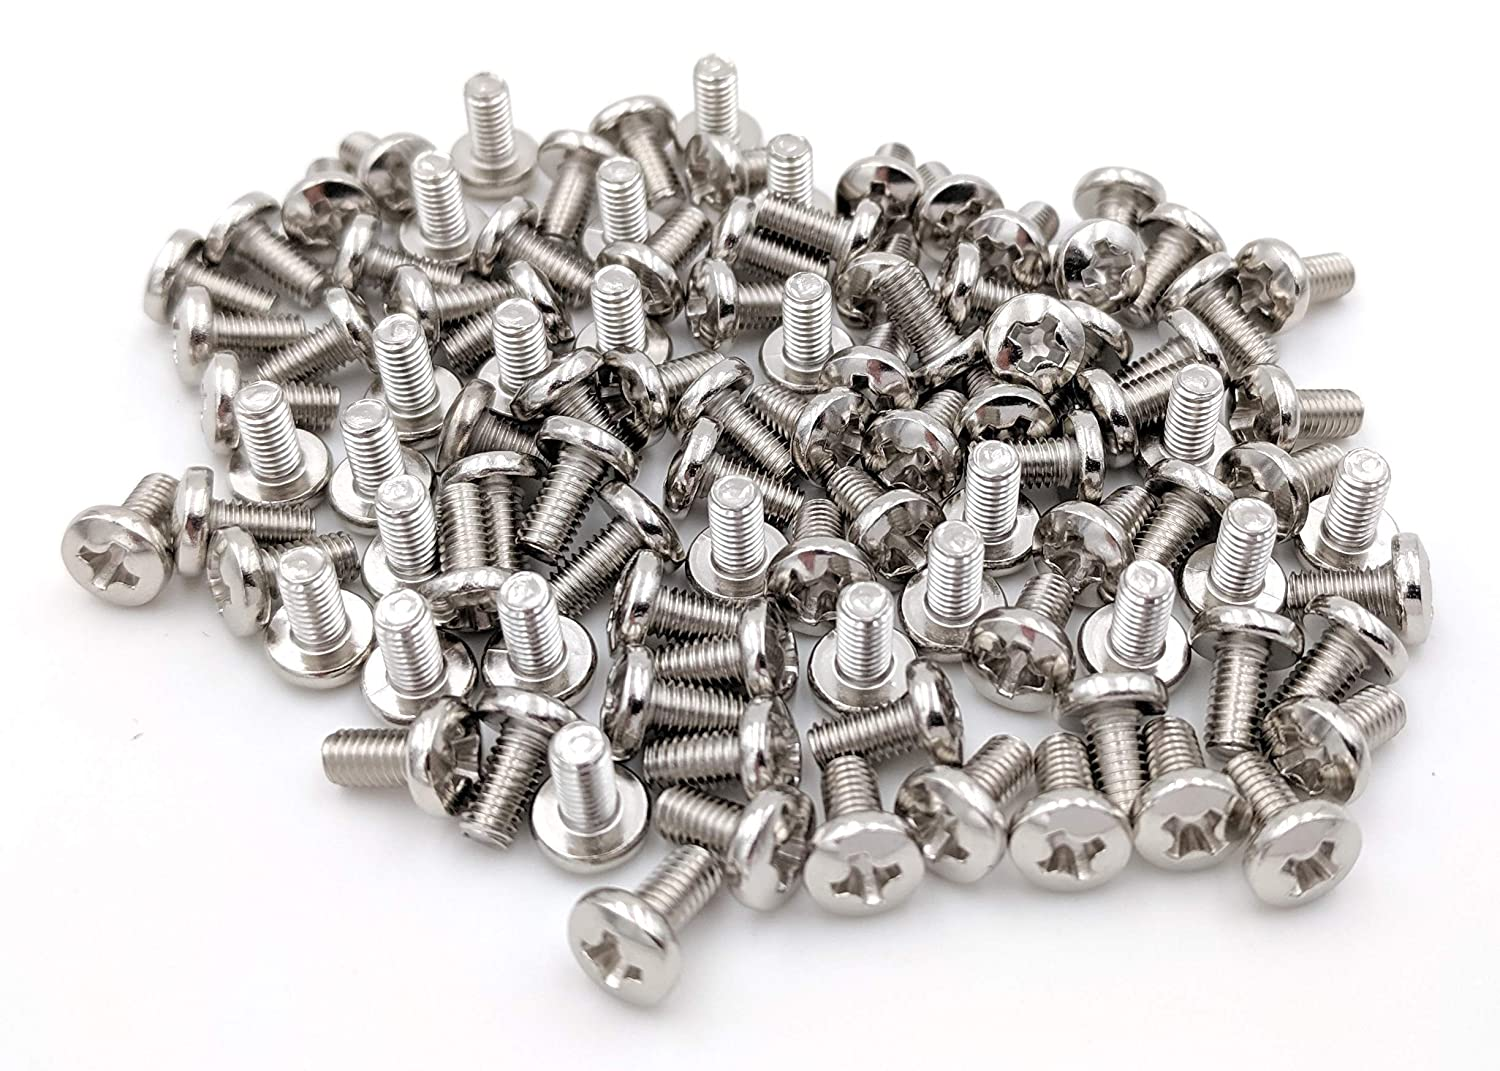 50-Pack Nickel Plated Chrome Cabinet 50 Screws for CB and 10 Meter Radios Cover